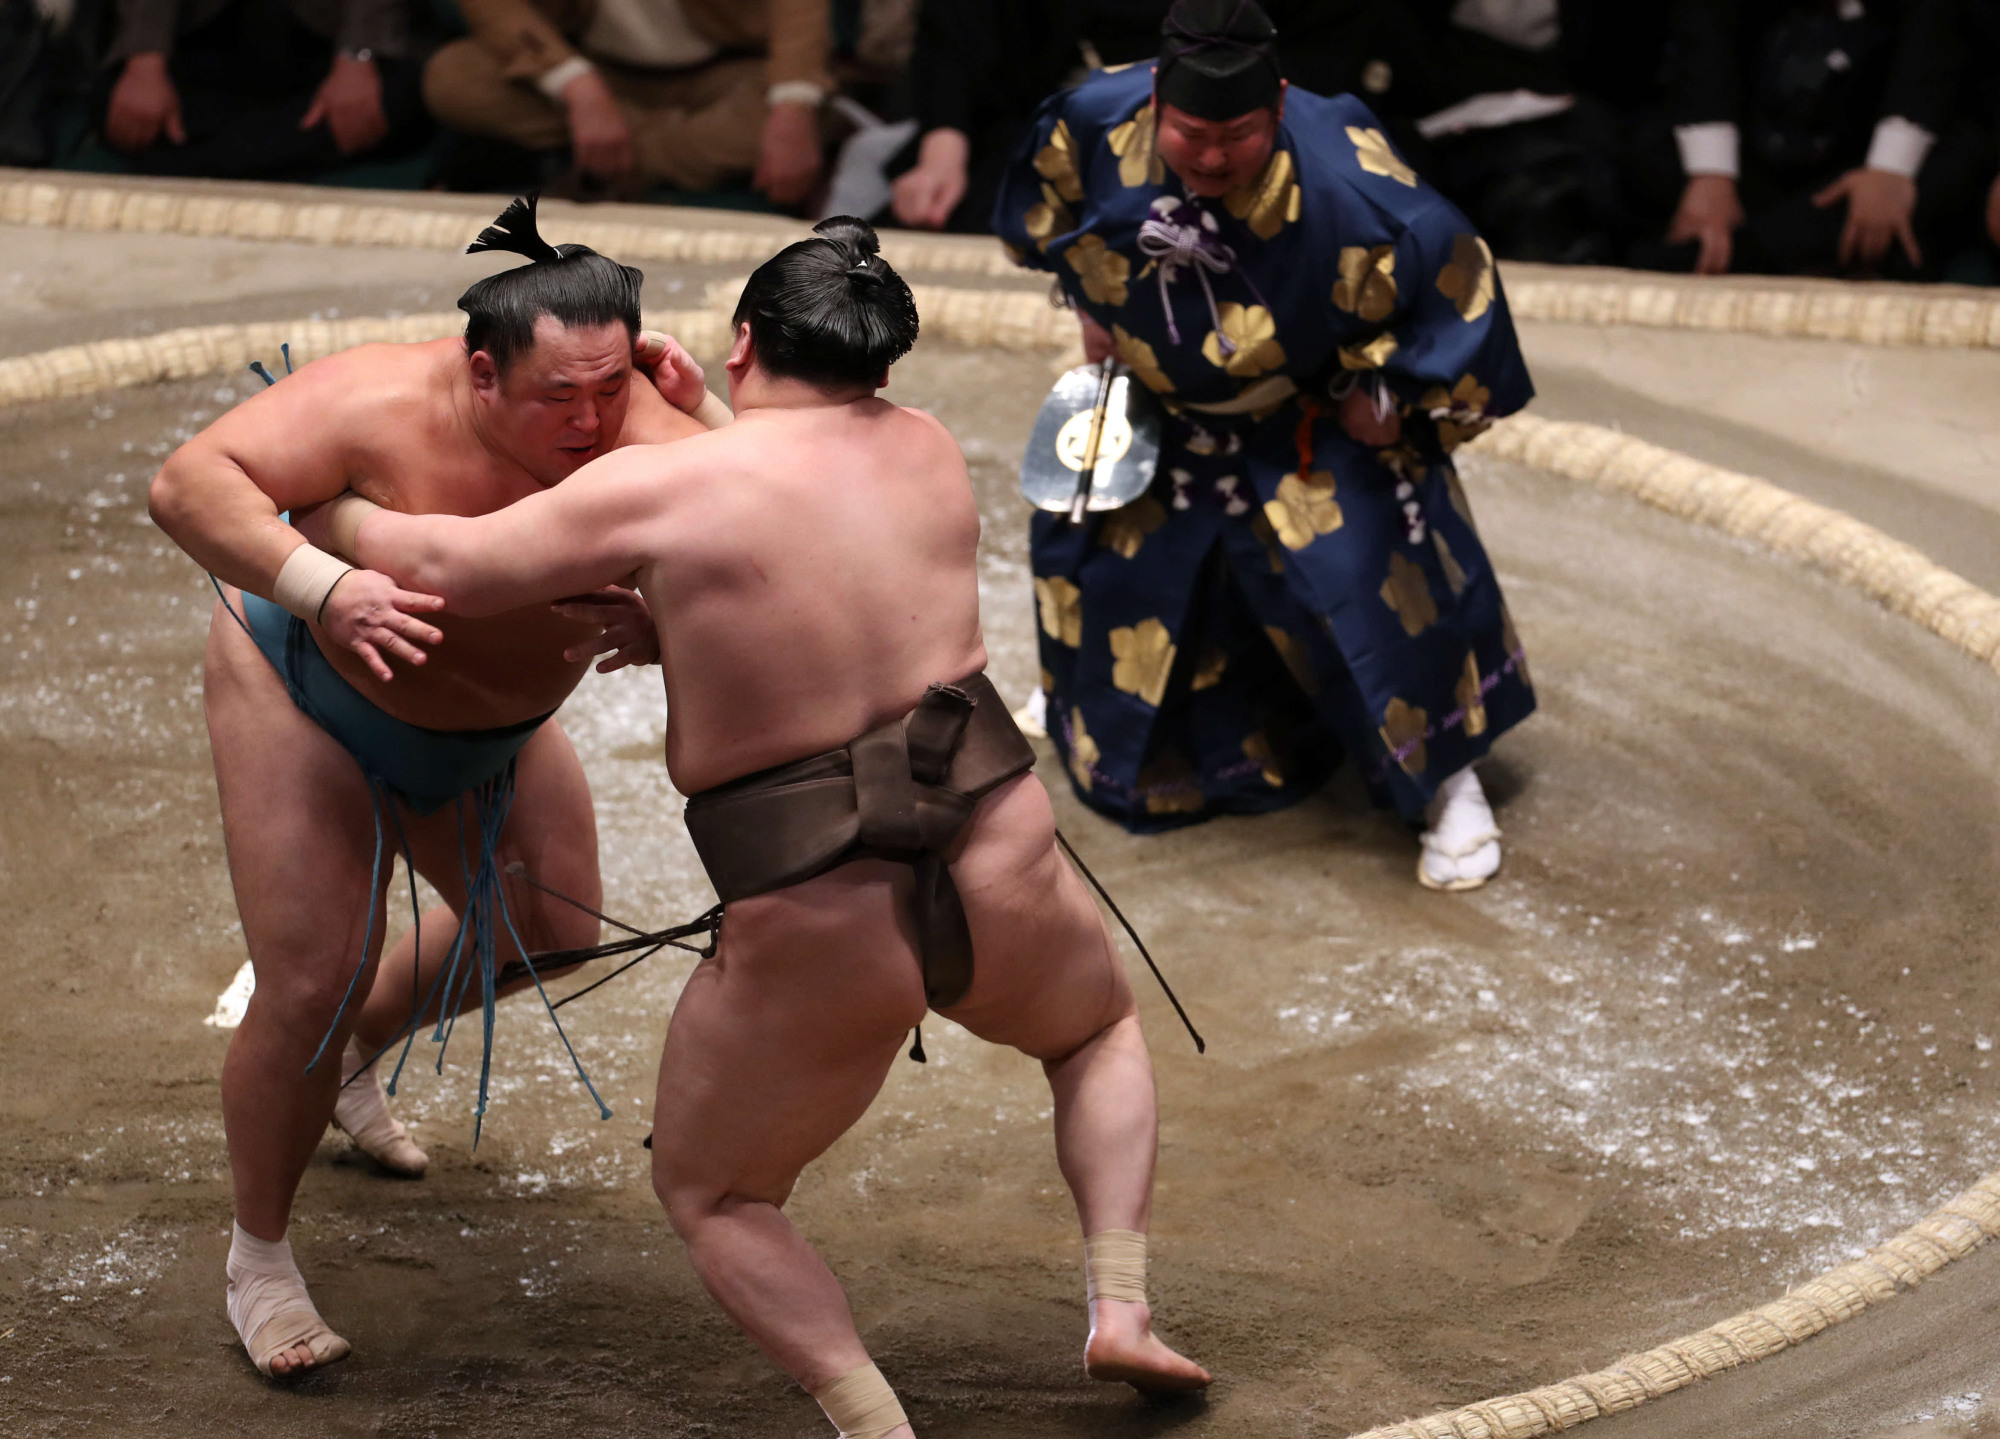 Sekiwake Tamawashi (left) forces out Hakuho to hand the yokozuna his second loss of the New Year Grand Sumo Tournament on Thursday at Ryogoku Kokugikan. They are tied at 10-2 with three days remaining at the 15-day tourney. | NIKKAN SPORTS